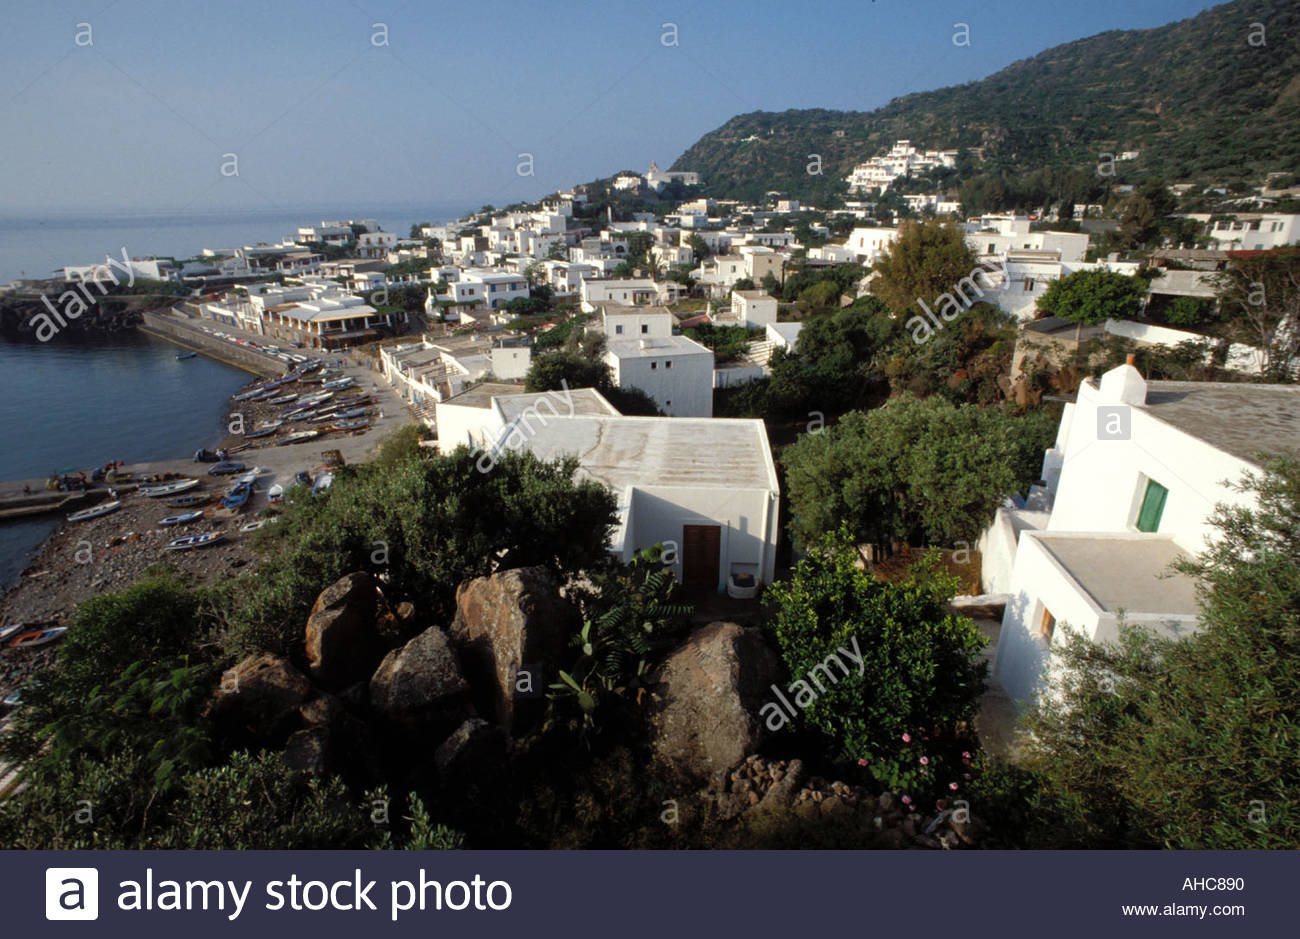 Panarea Italy  City pictures : San Pietro Panarea Island Sicily Italy Stock Photo, Royalty Free Image ...